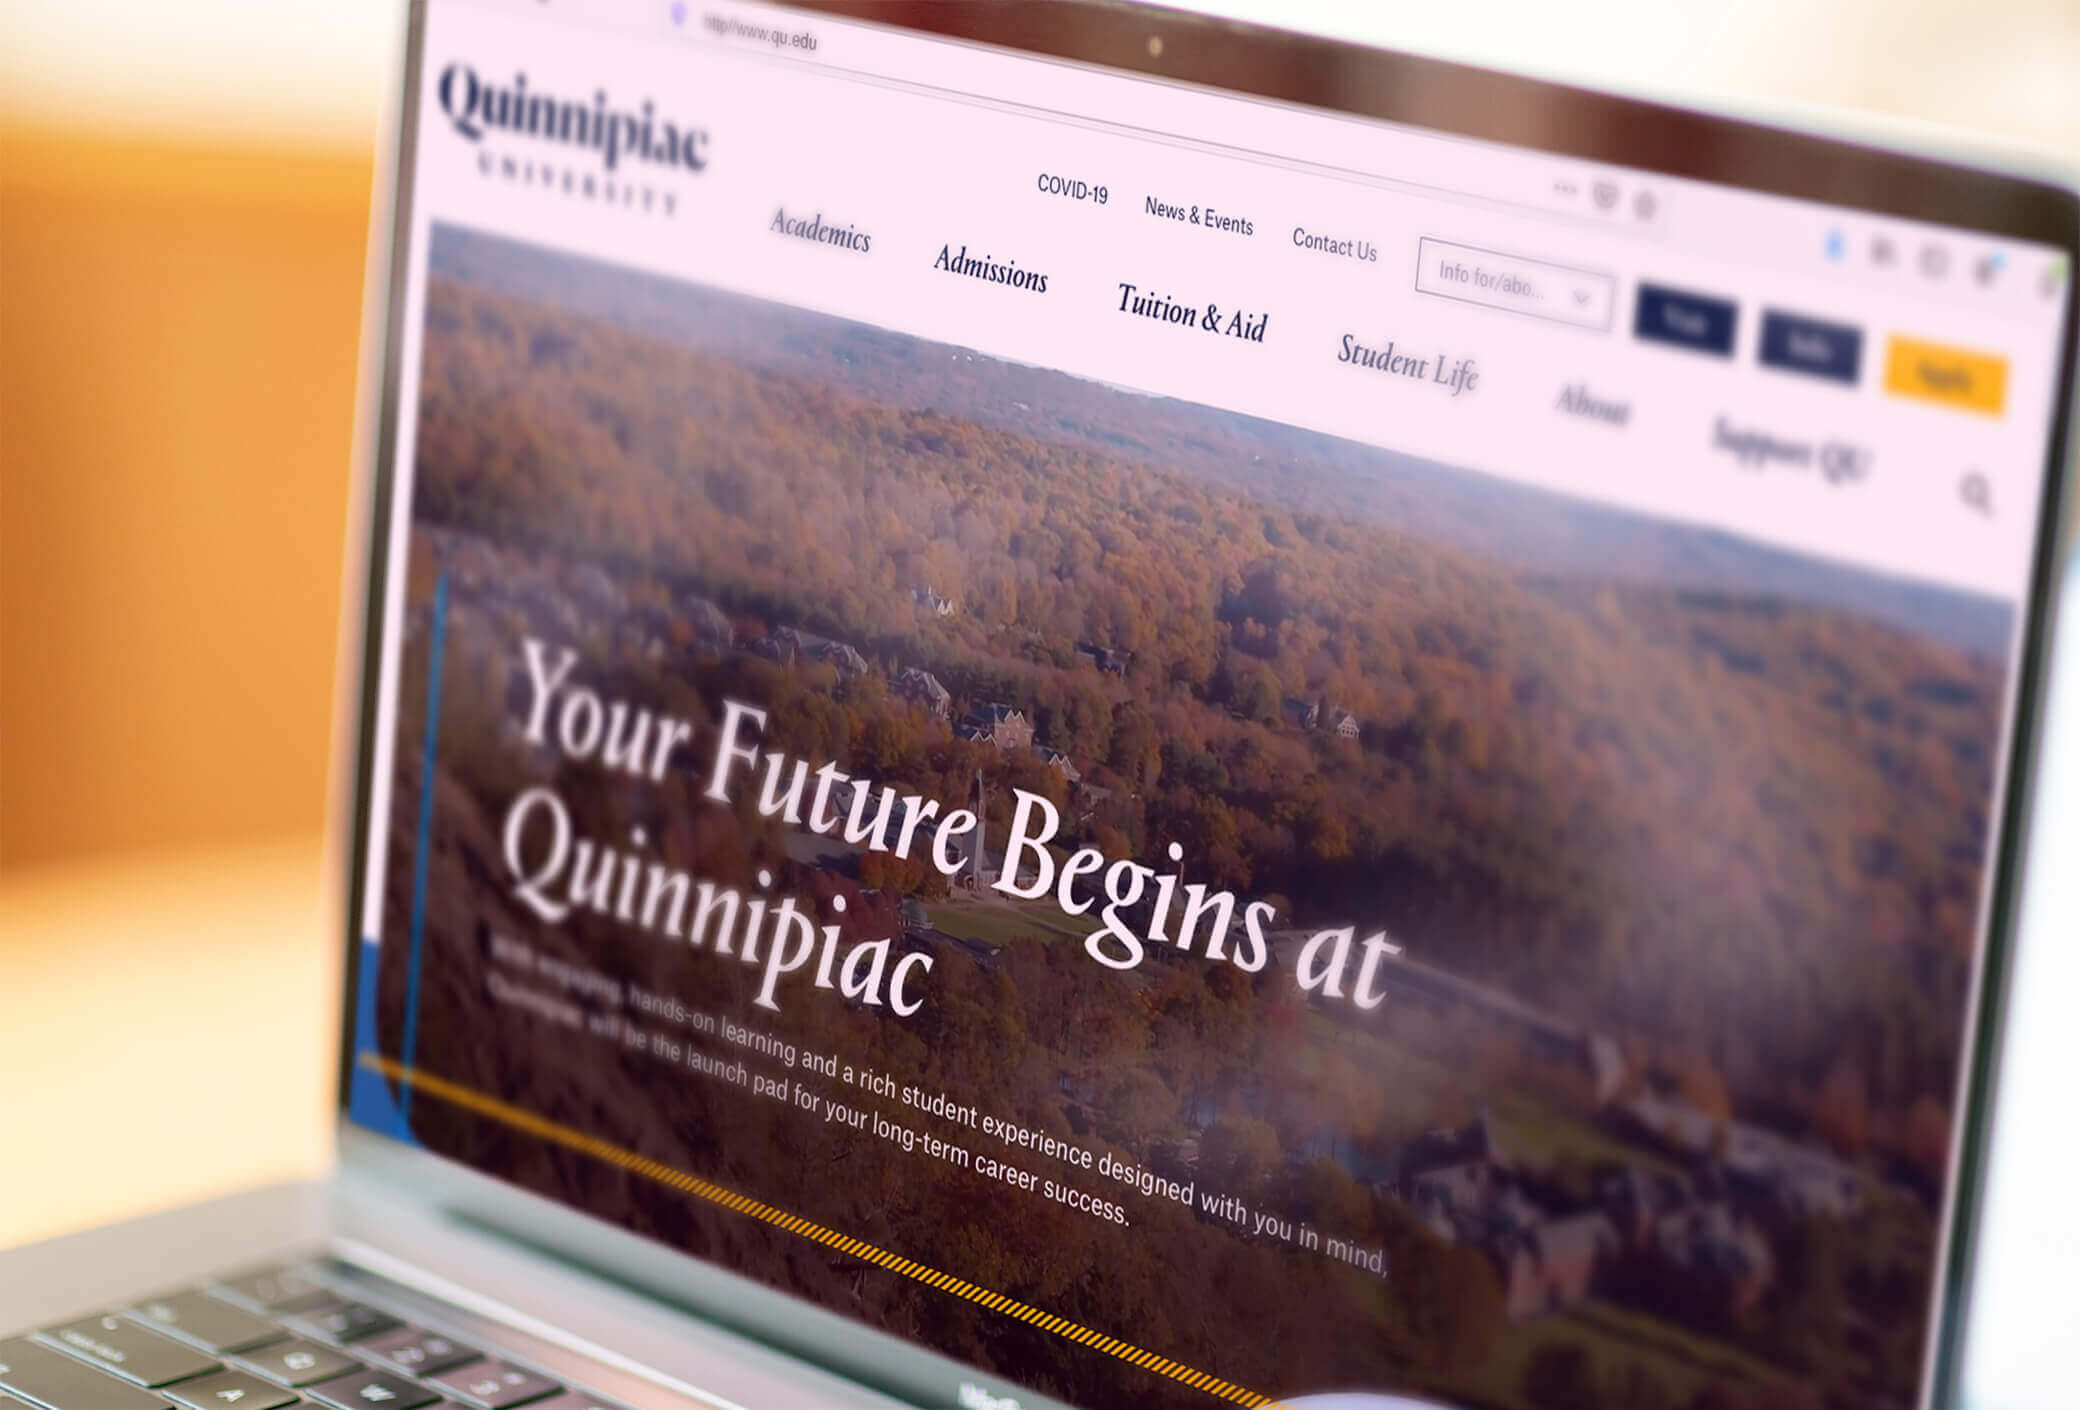 Laptop screen showing the landing page of Quinnipiac's website..